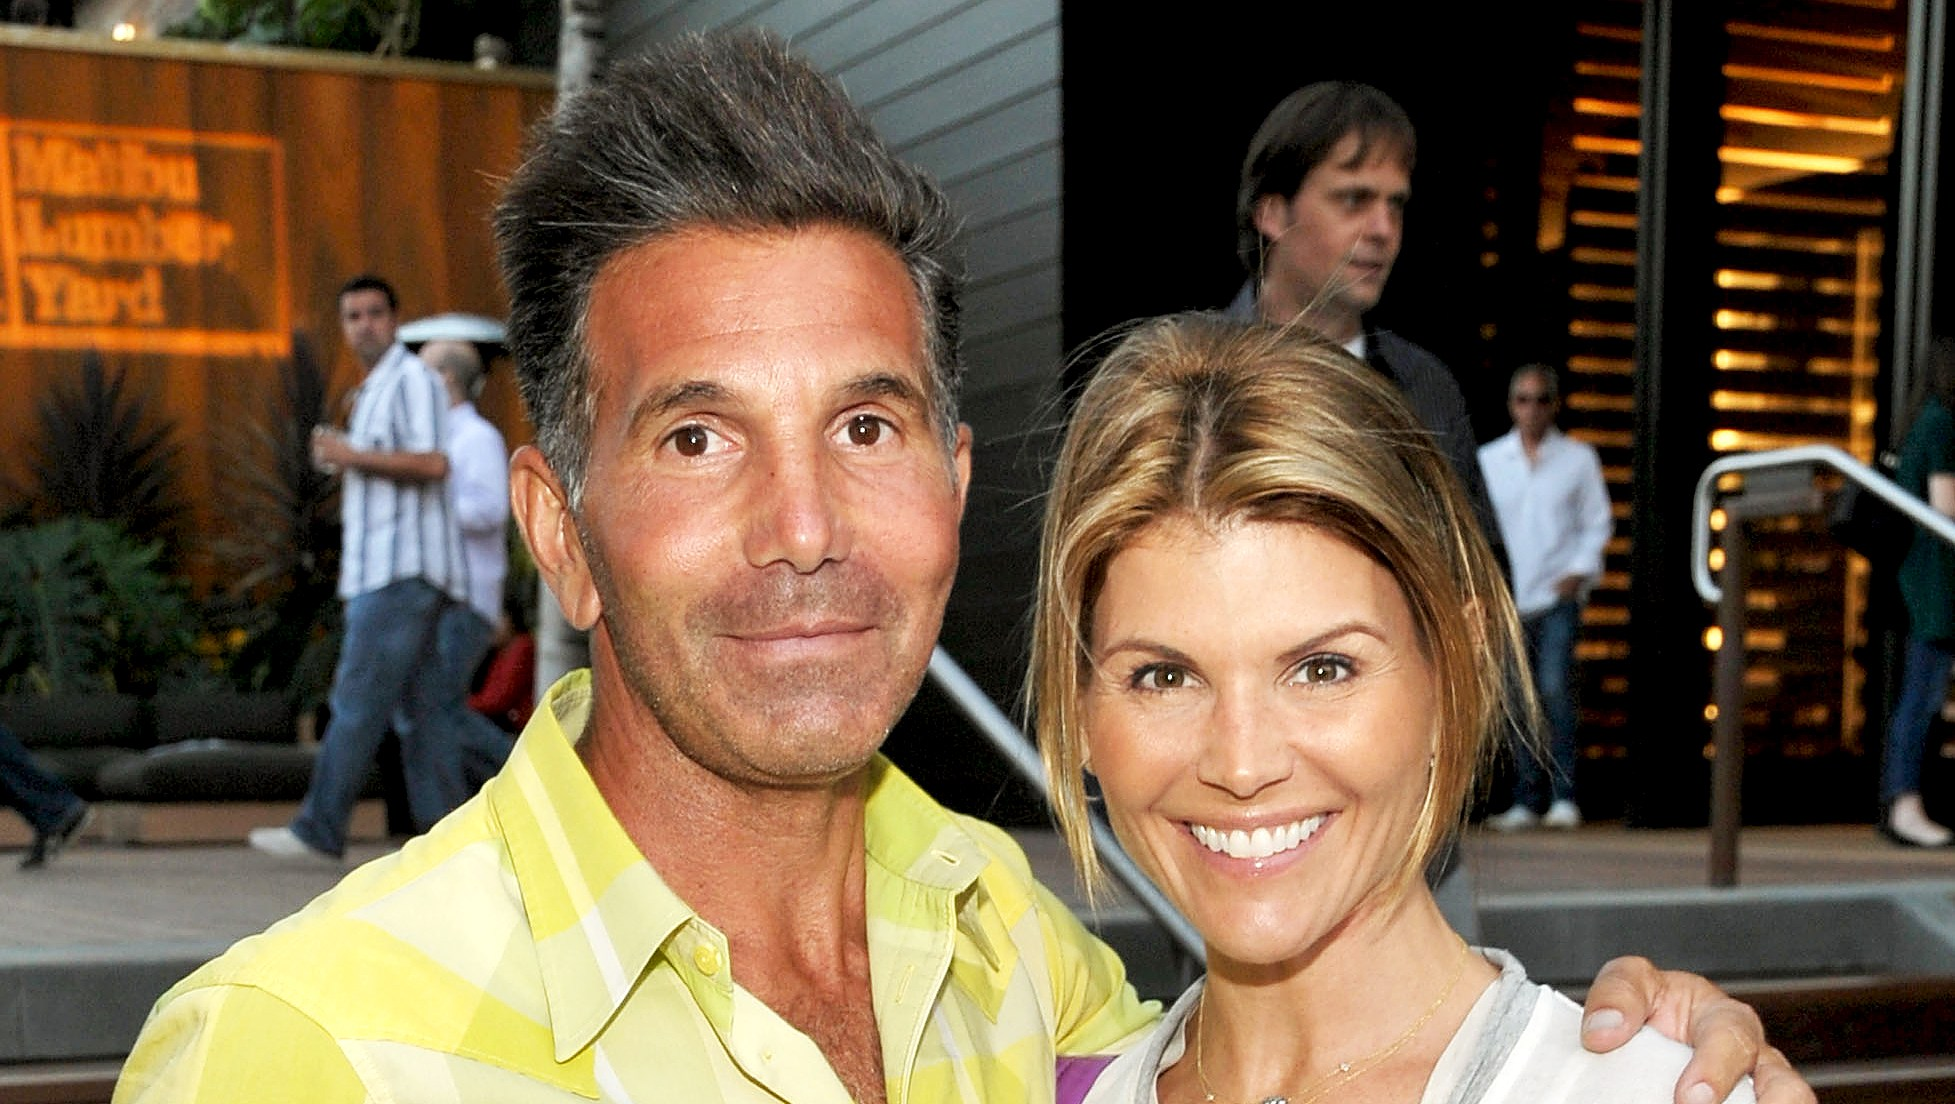 Lori Loughlin and Husband Mossimo Giannulli Will Be Audited by IRS Over College Scandal